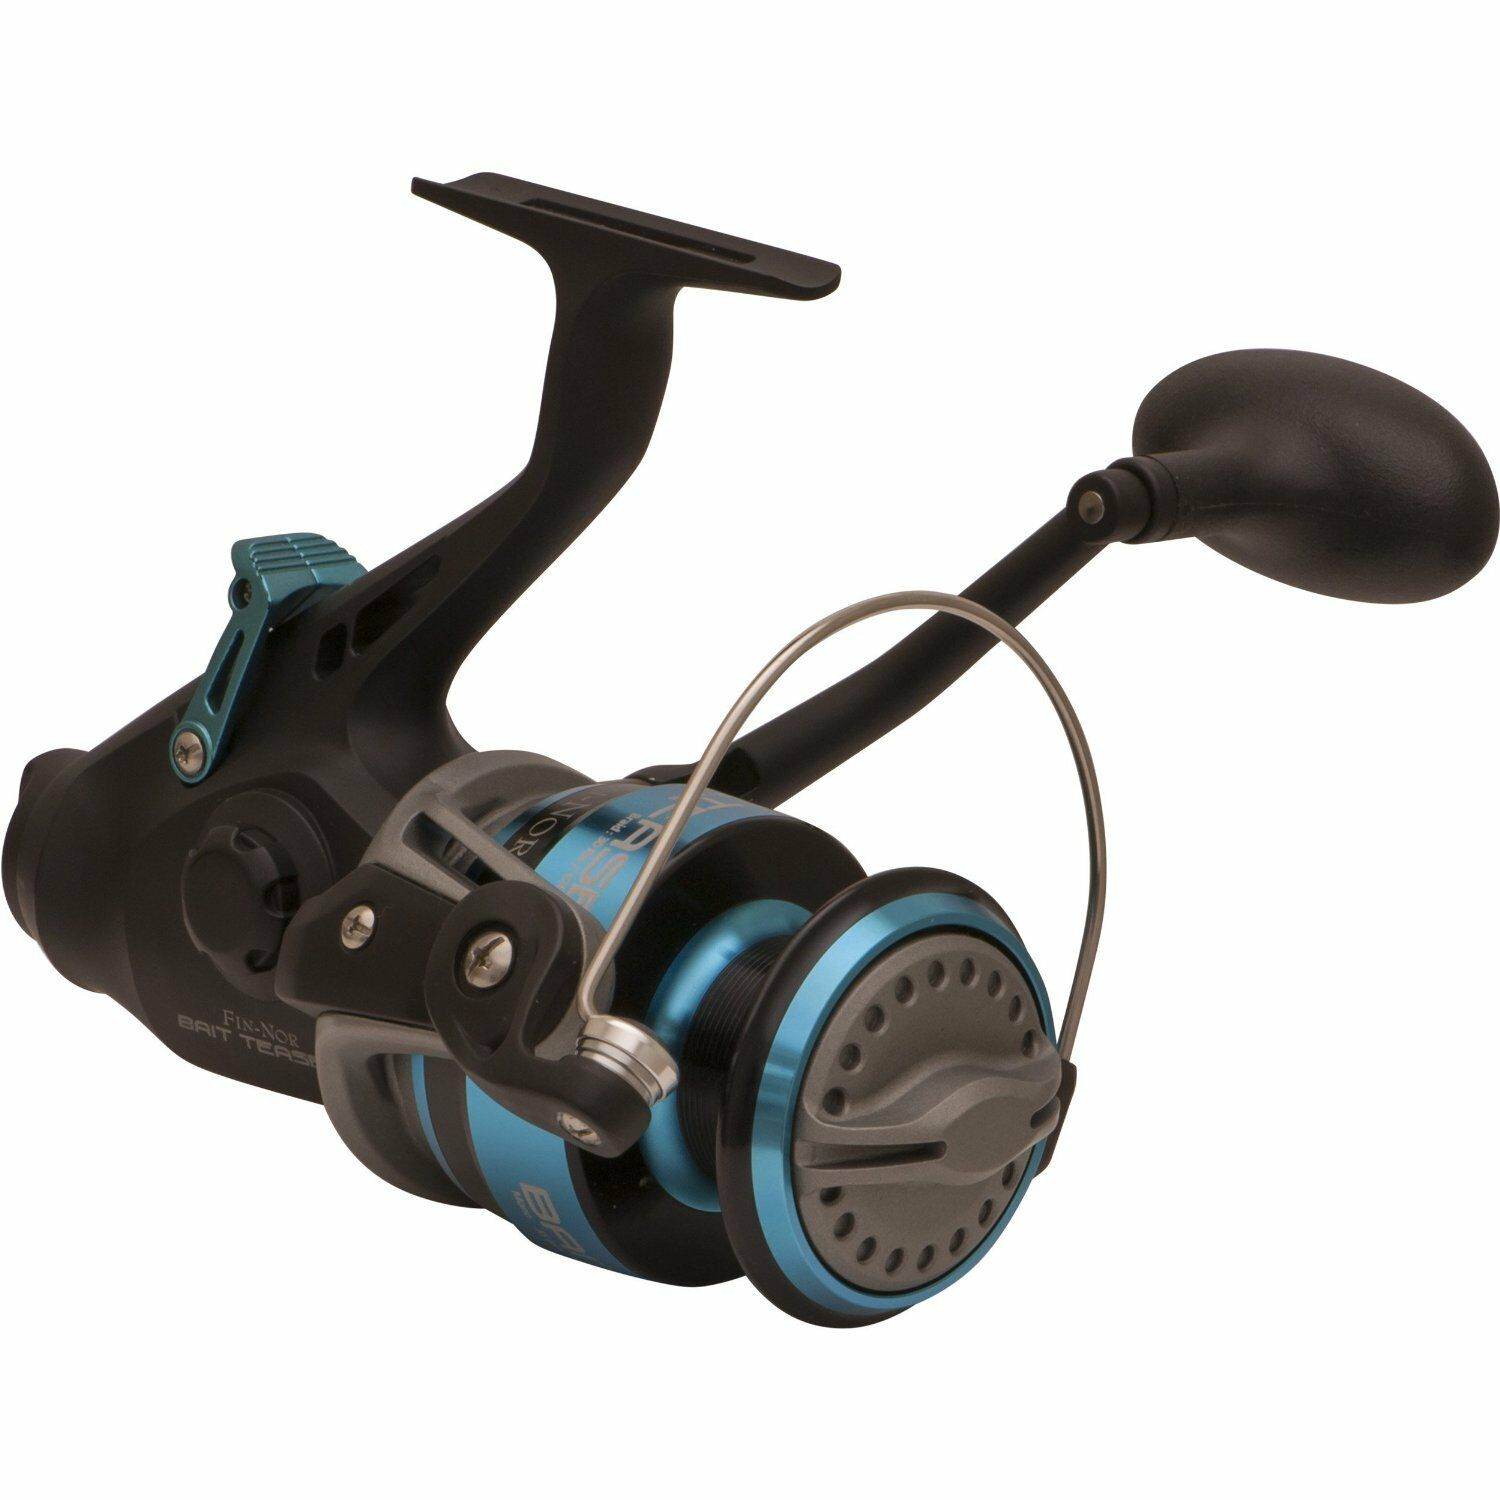 NEW FinNor Bait Teaser Spinning Reel wTrue FreeSpool BT80